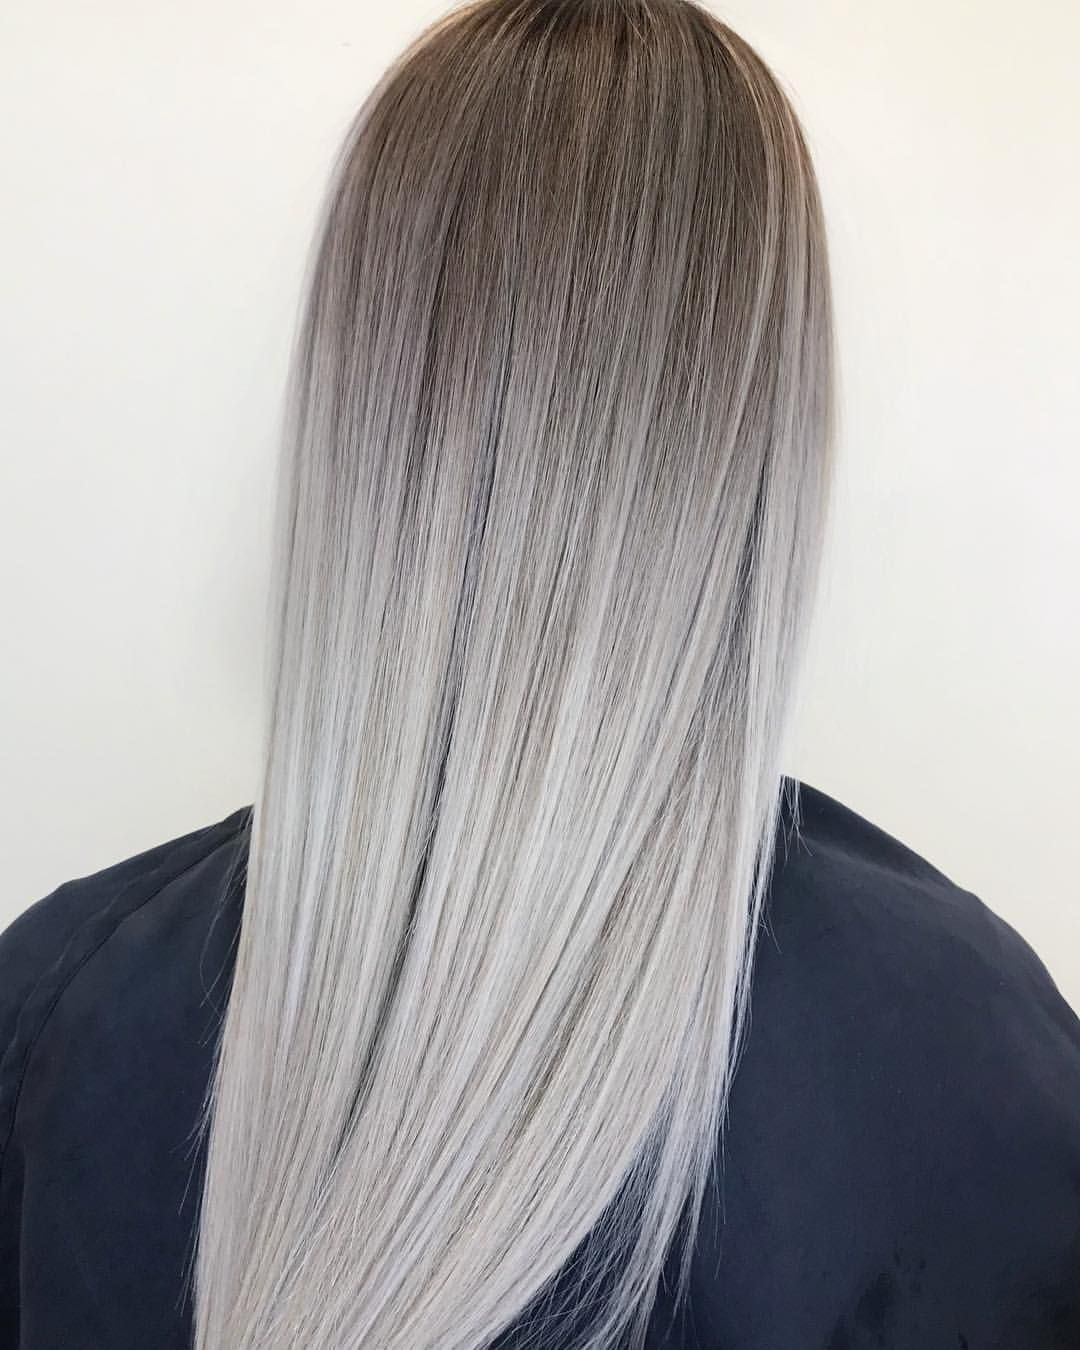 """Lisa Walker on Instagram: """"Morning Blend….. Converted this previous foil highlighted blonde 💁🏼💁🏼to a blended bombshell 💣🐚"""""""